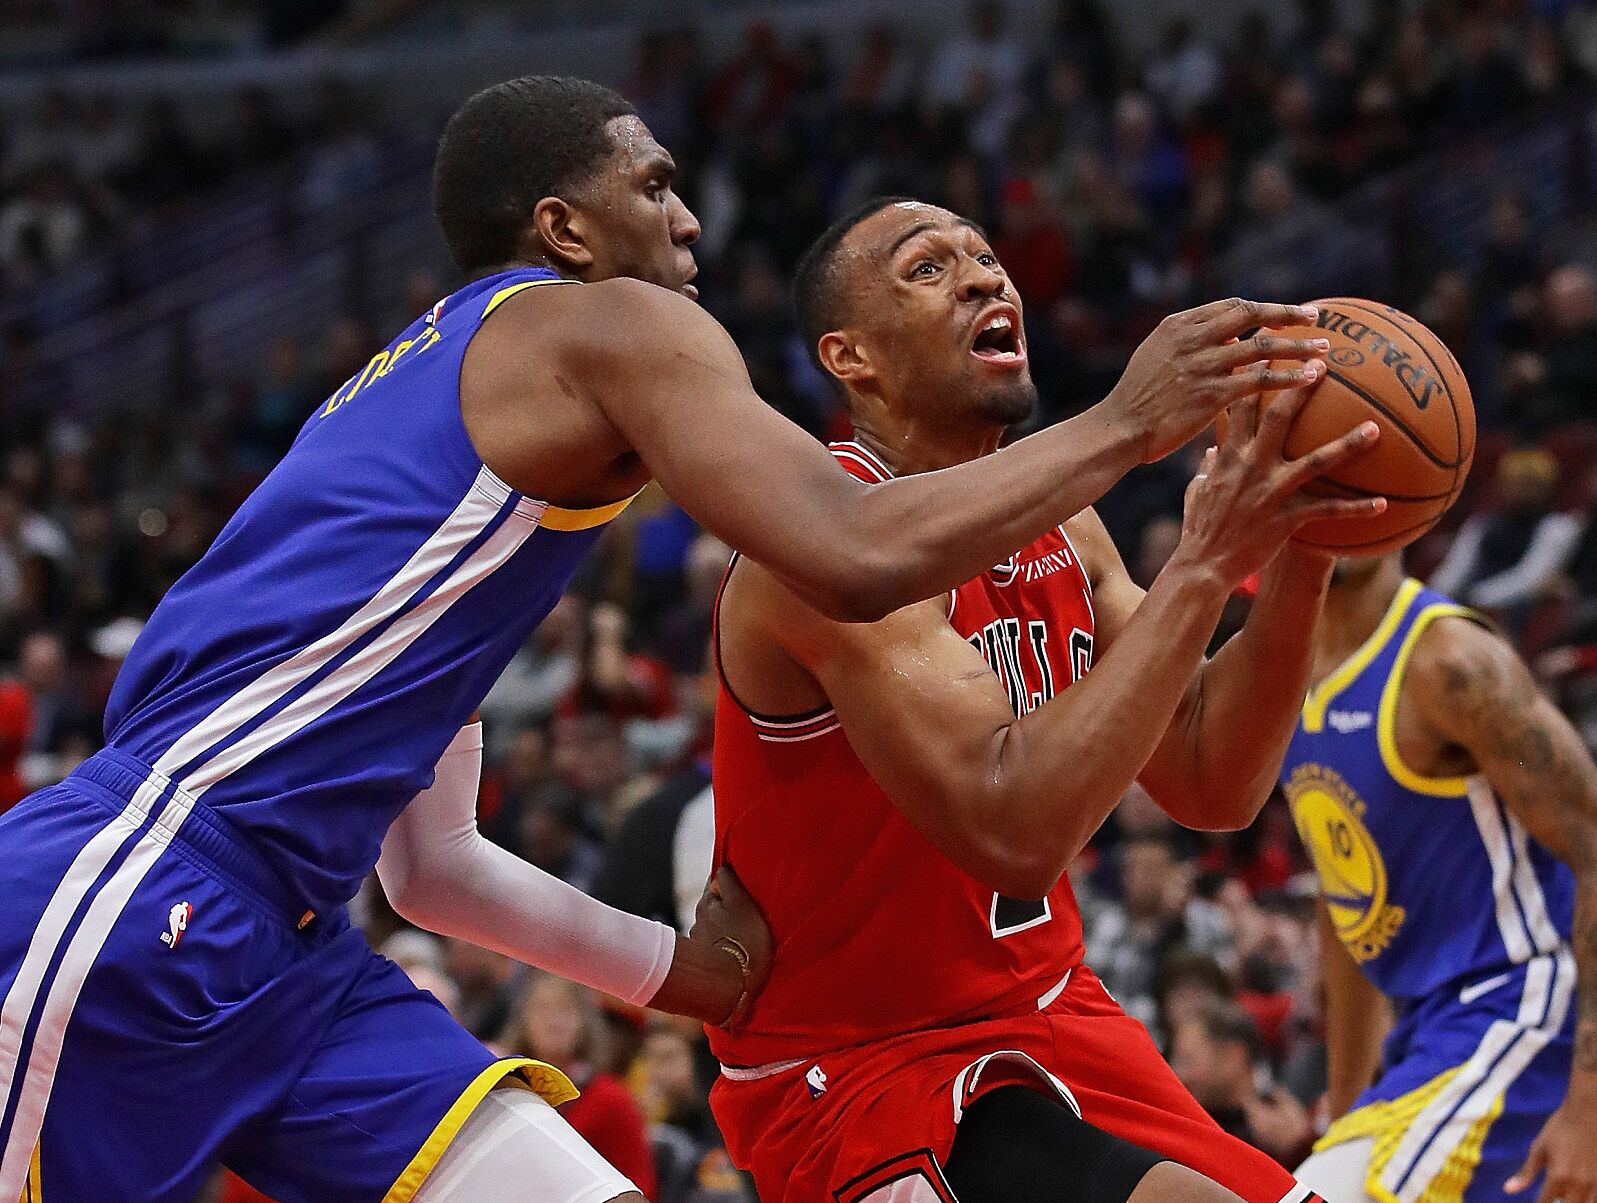 d339420e0001 The Chicago Bulls are looking for a suitor for Jabari Parker. Here are some  options they should consider